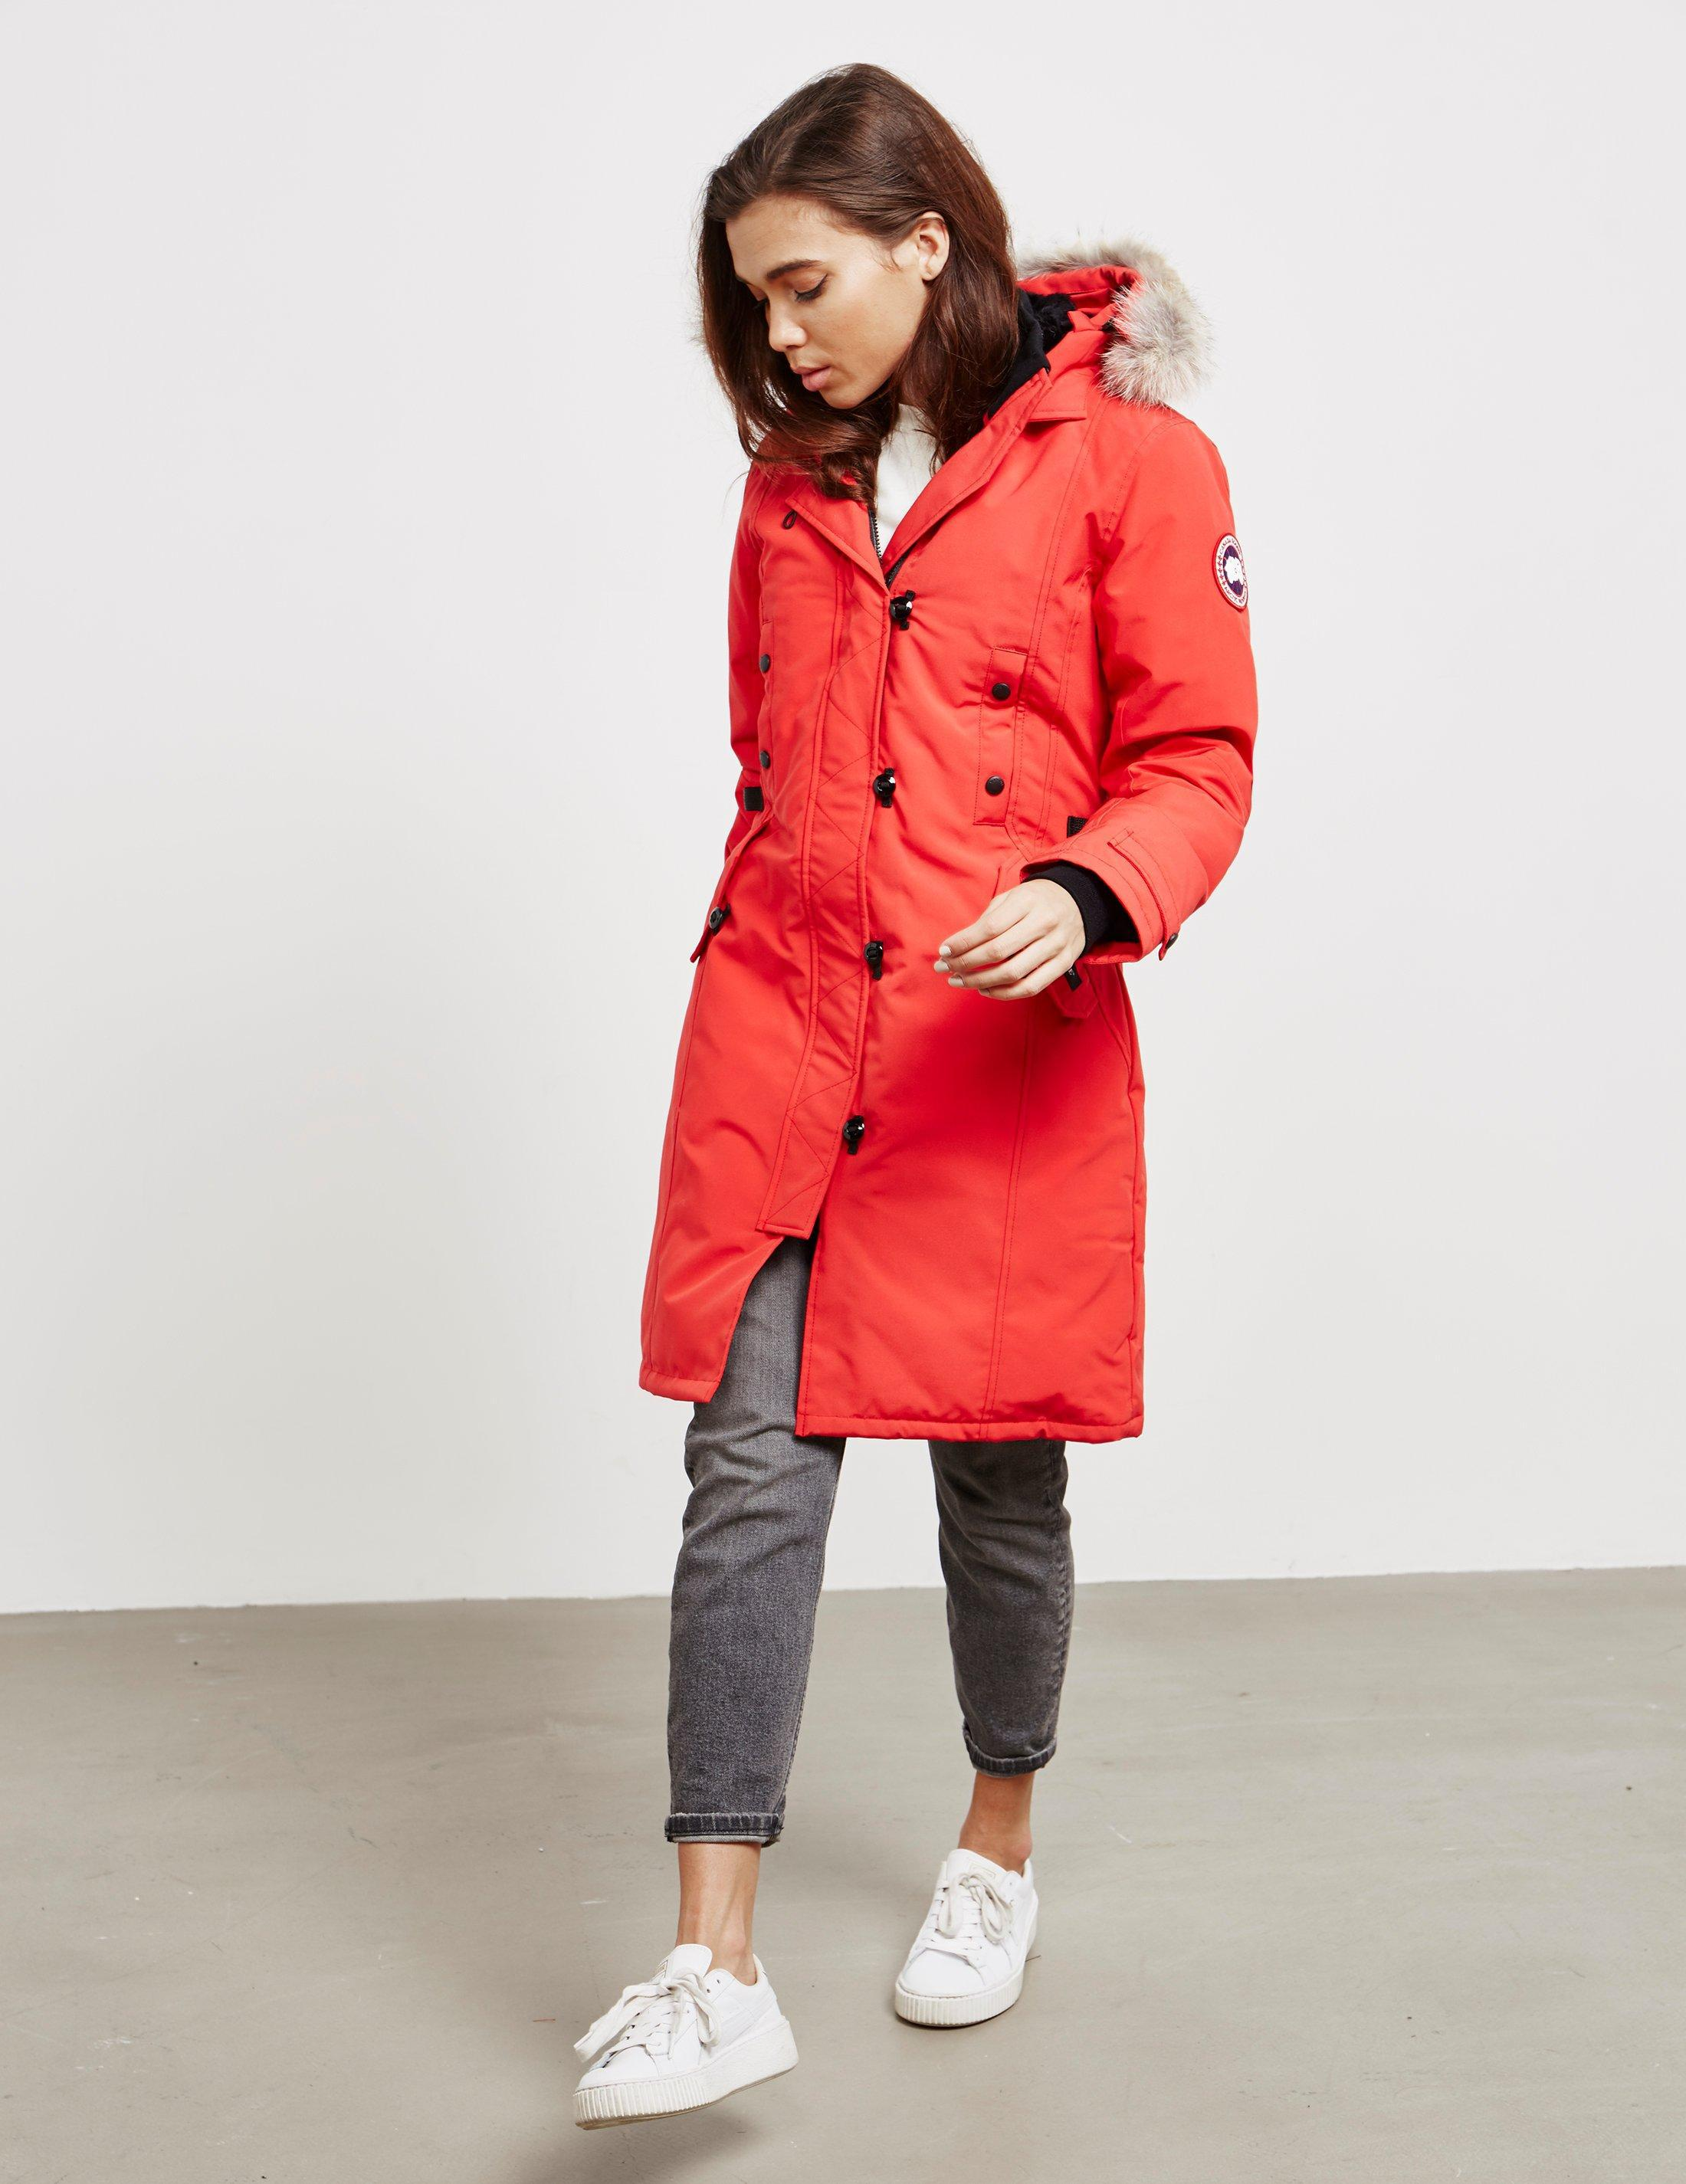 63177205e043d Lyst - Canada Goose Womens Kensington Padded Parka Jacket Red in Red